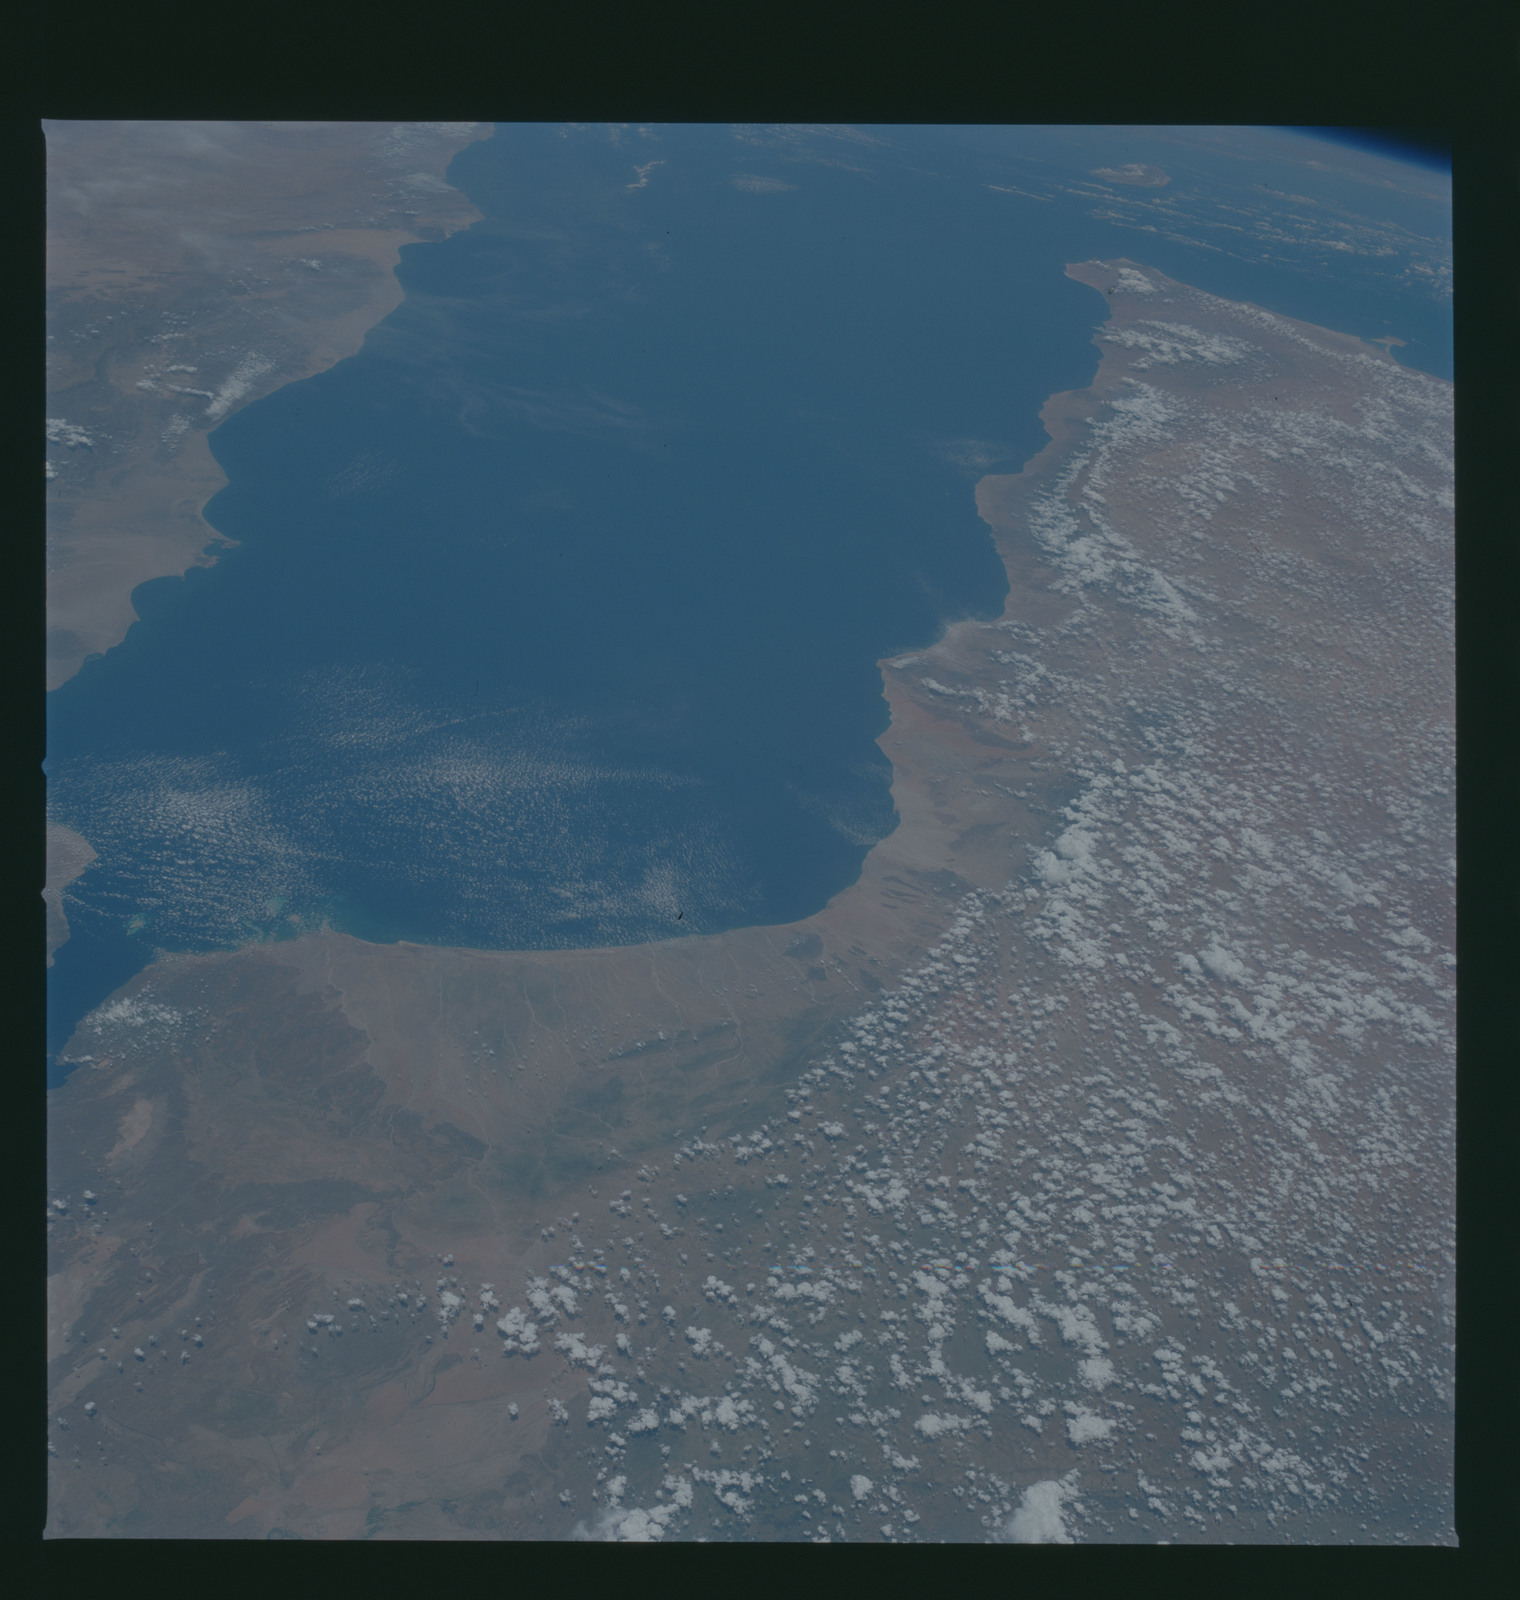 S37-94-100 - STS-037 - Earth observations taken from OV-104 during STS-37 mission